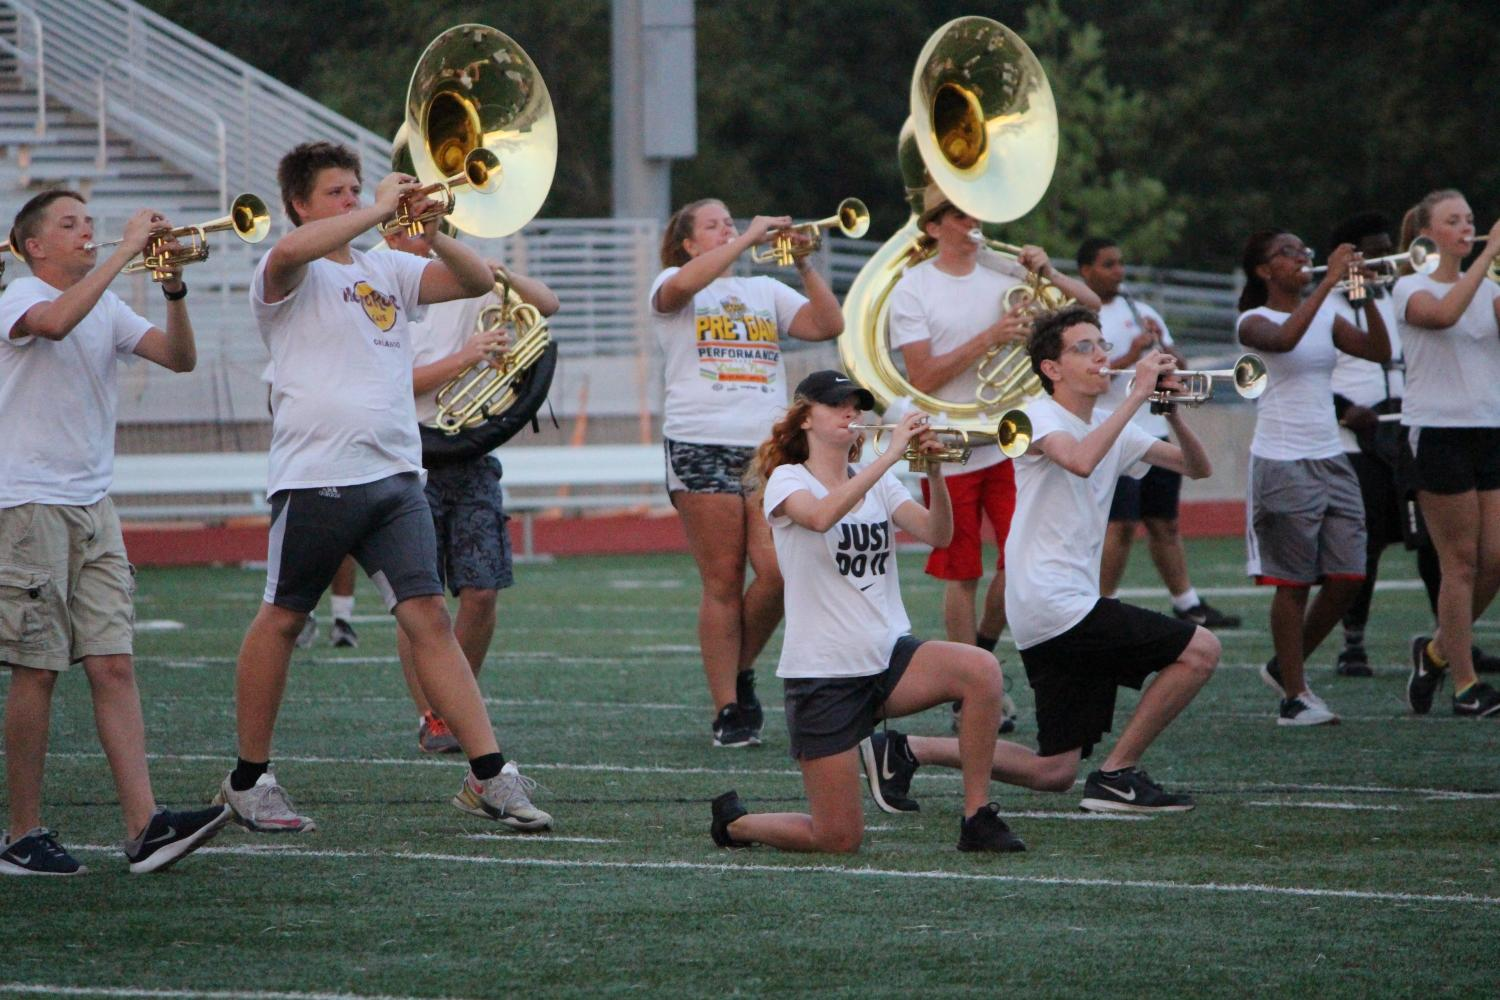 Ethan Wiedmier stands in a pose playing his trumpet while Grace Baer and Andrew Downs kneel while playing their trumpets during a halftime show.